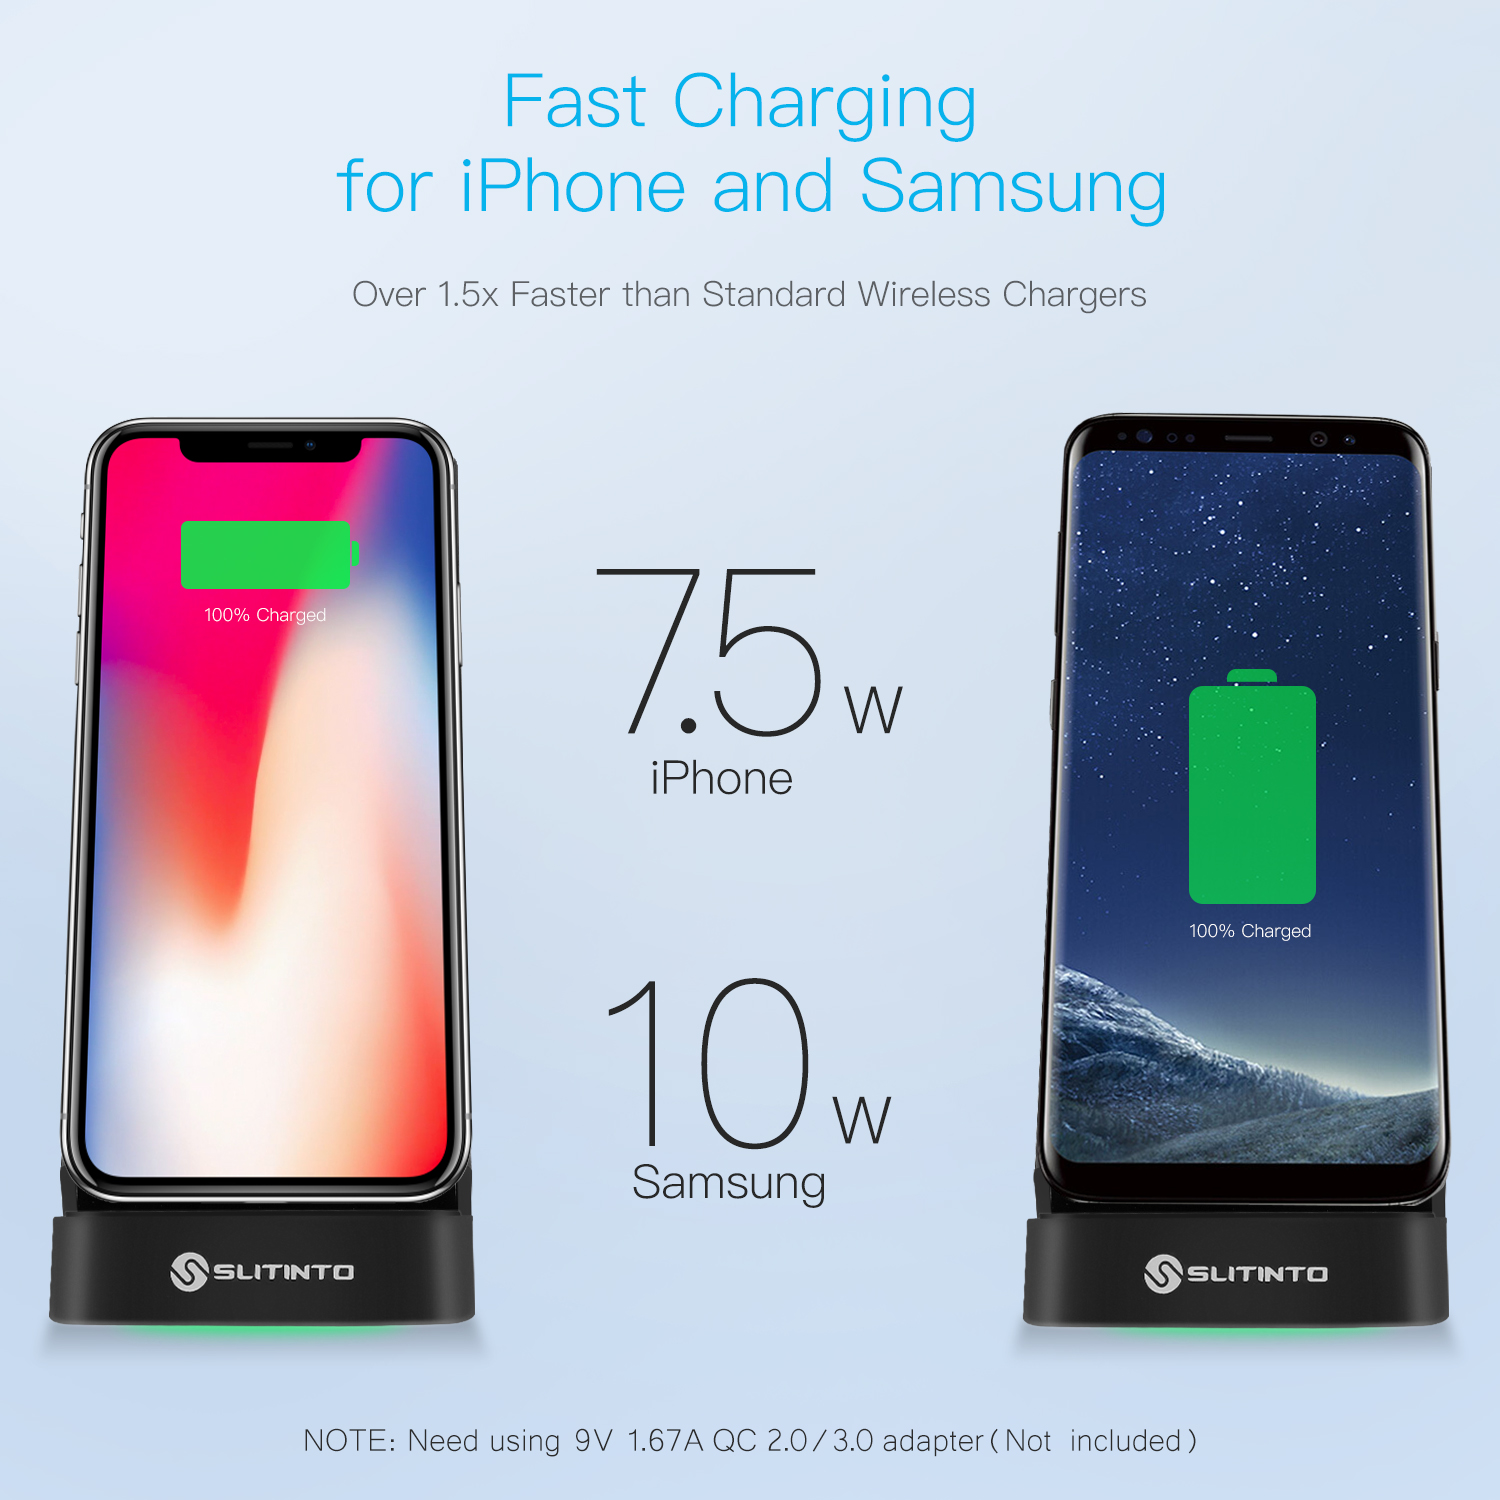 slitinto Wireless Charger, 7.5W Fast Wireless Charging Stand Compatible iPhone XS MAX/XR/XS/X/8/8 Plus, 10W Fast Wireless Charger Stand Compatible Galaxy Note 9/8/5 S9/ S9+S8/S8+(with LED Light)